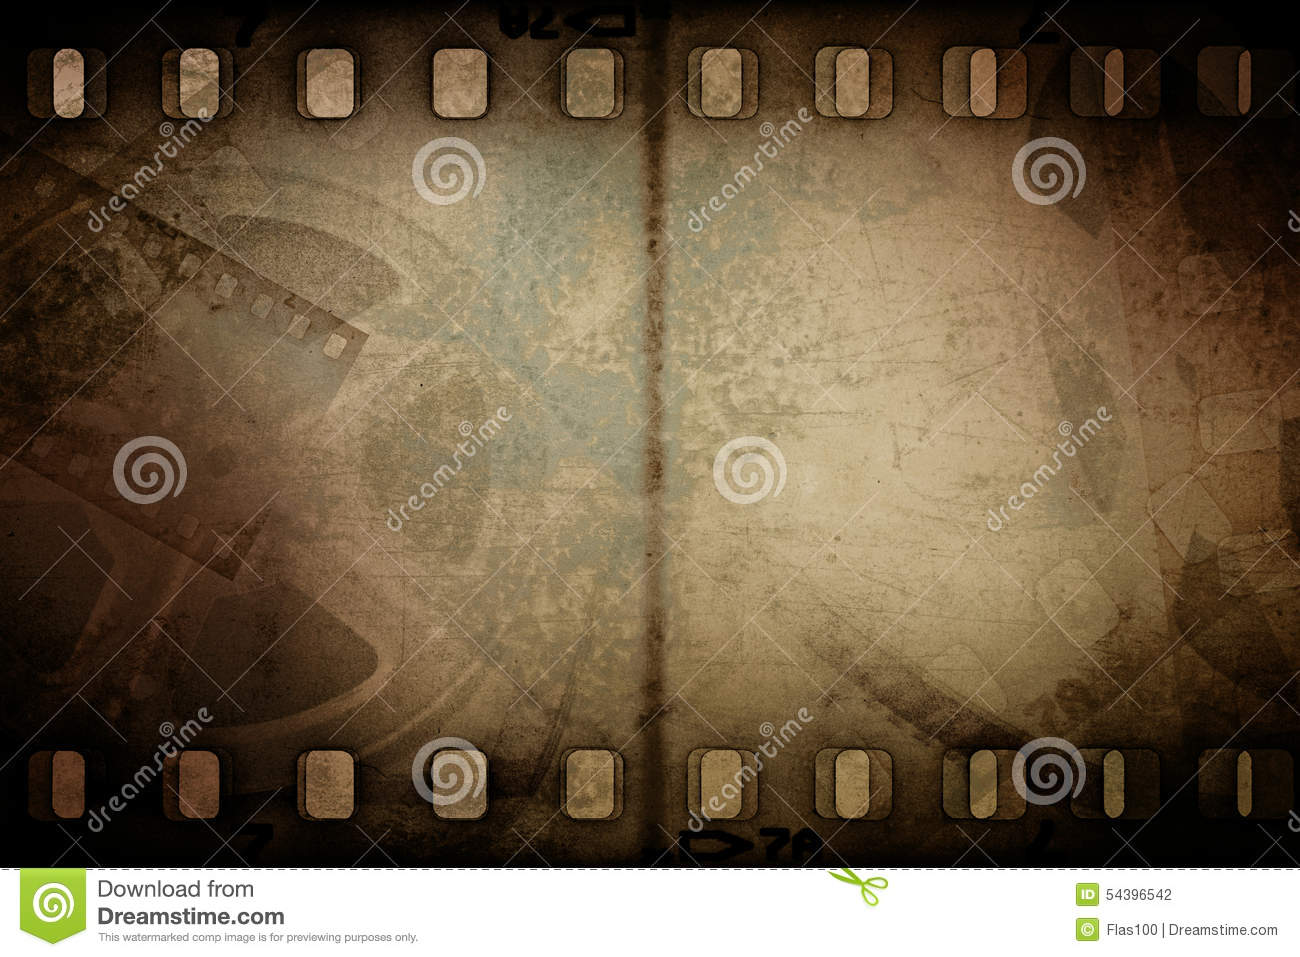 Download Grunge Old Motion Picture Reel With Film Strip Stock Photo - Image of cinematography, picture: 54396542